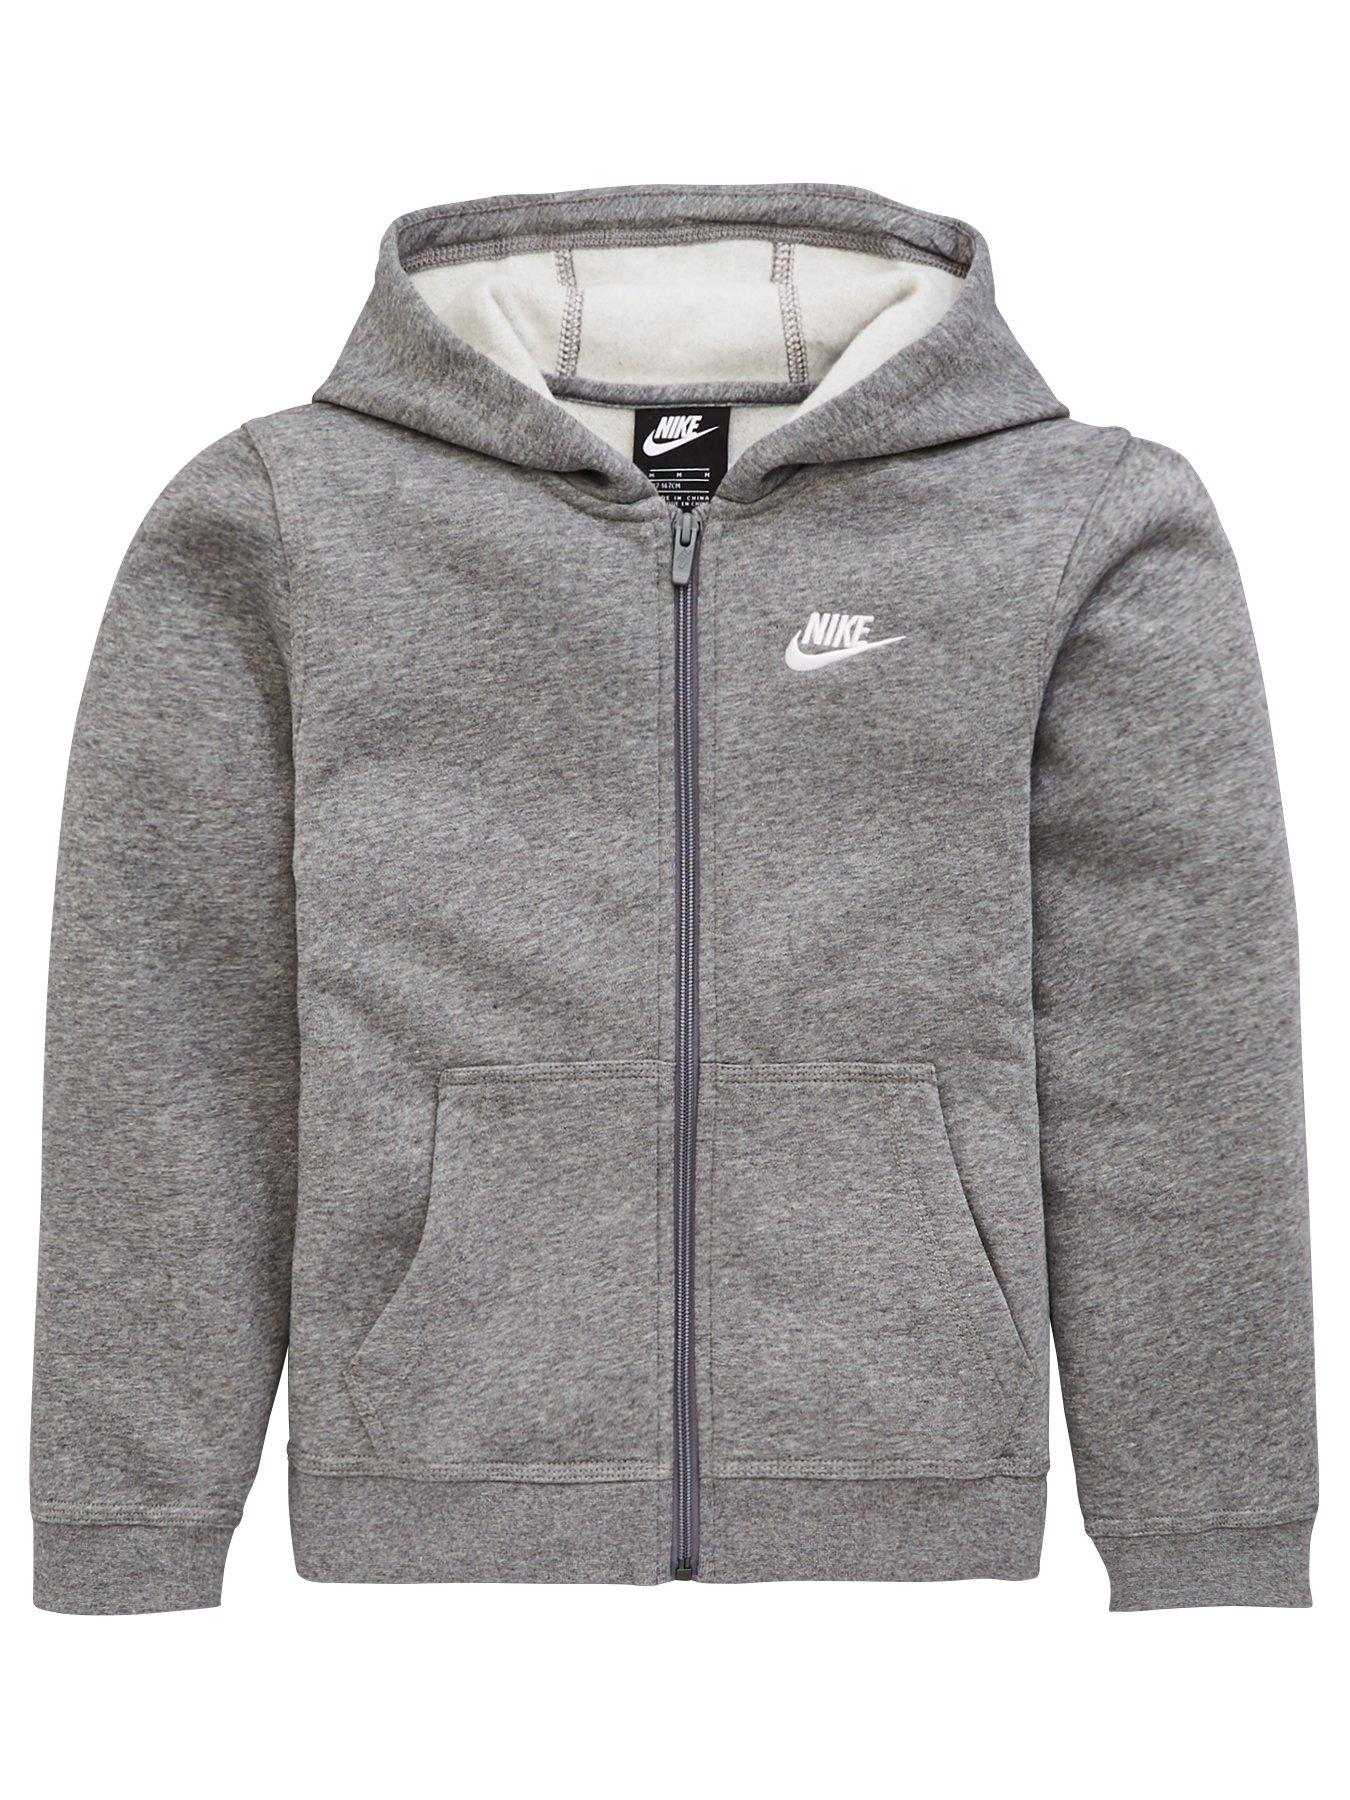 Boys clothes | Child & baby | Nike | very.co.uk